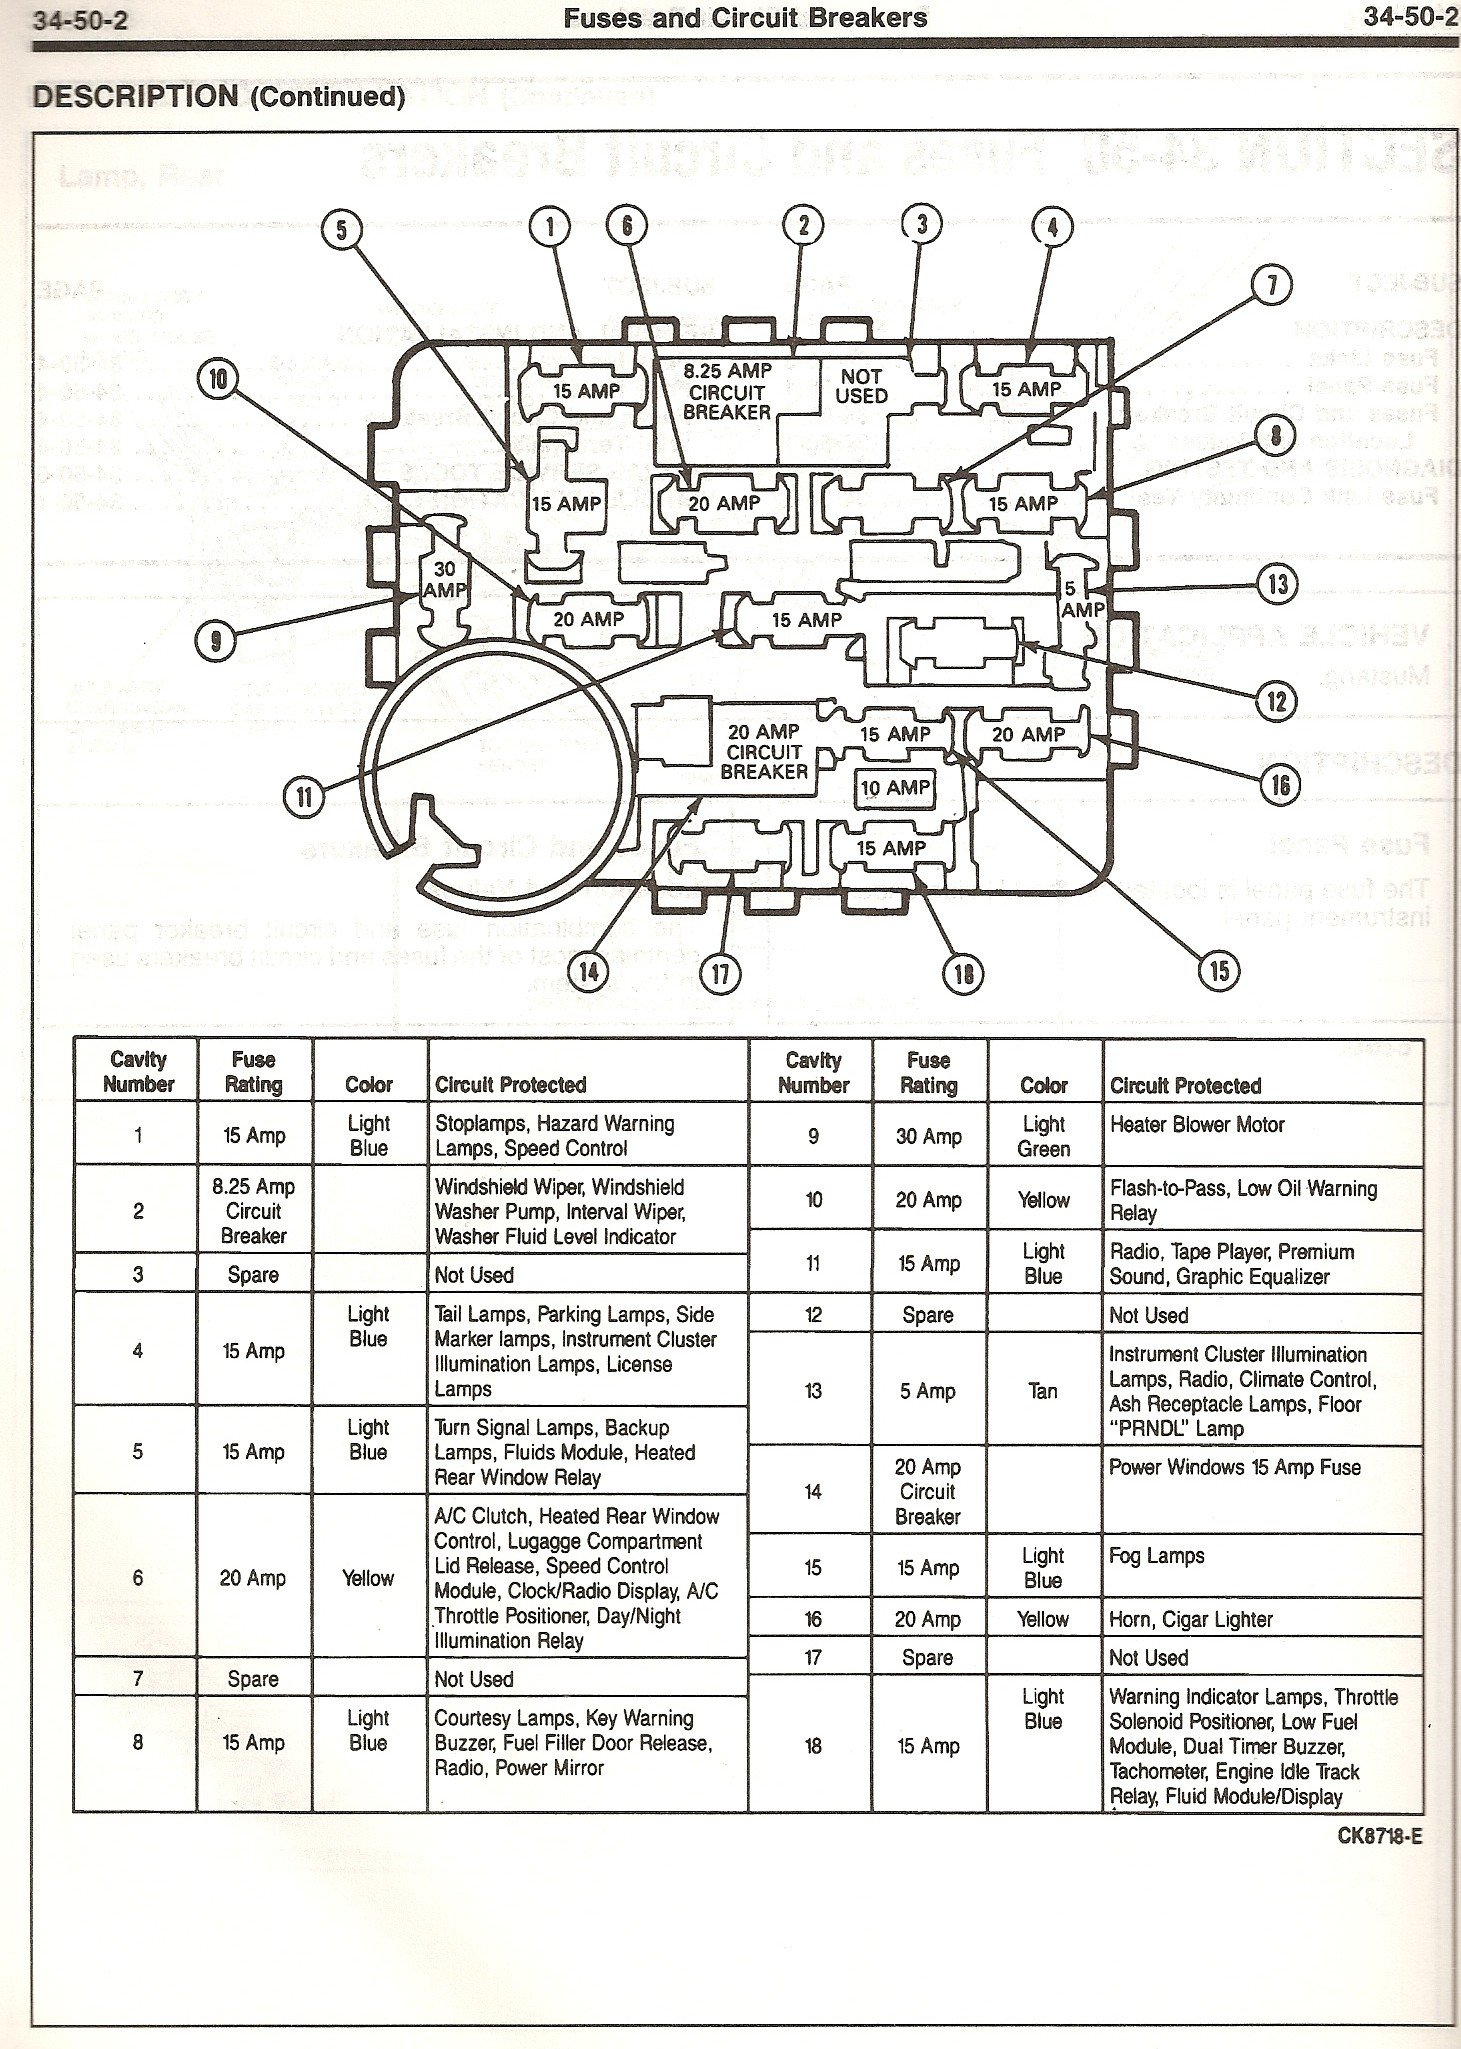 93 ford ranger 2 3 wiring diagram types of diagrams and charts best library 1990 mustang missing fuse panel